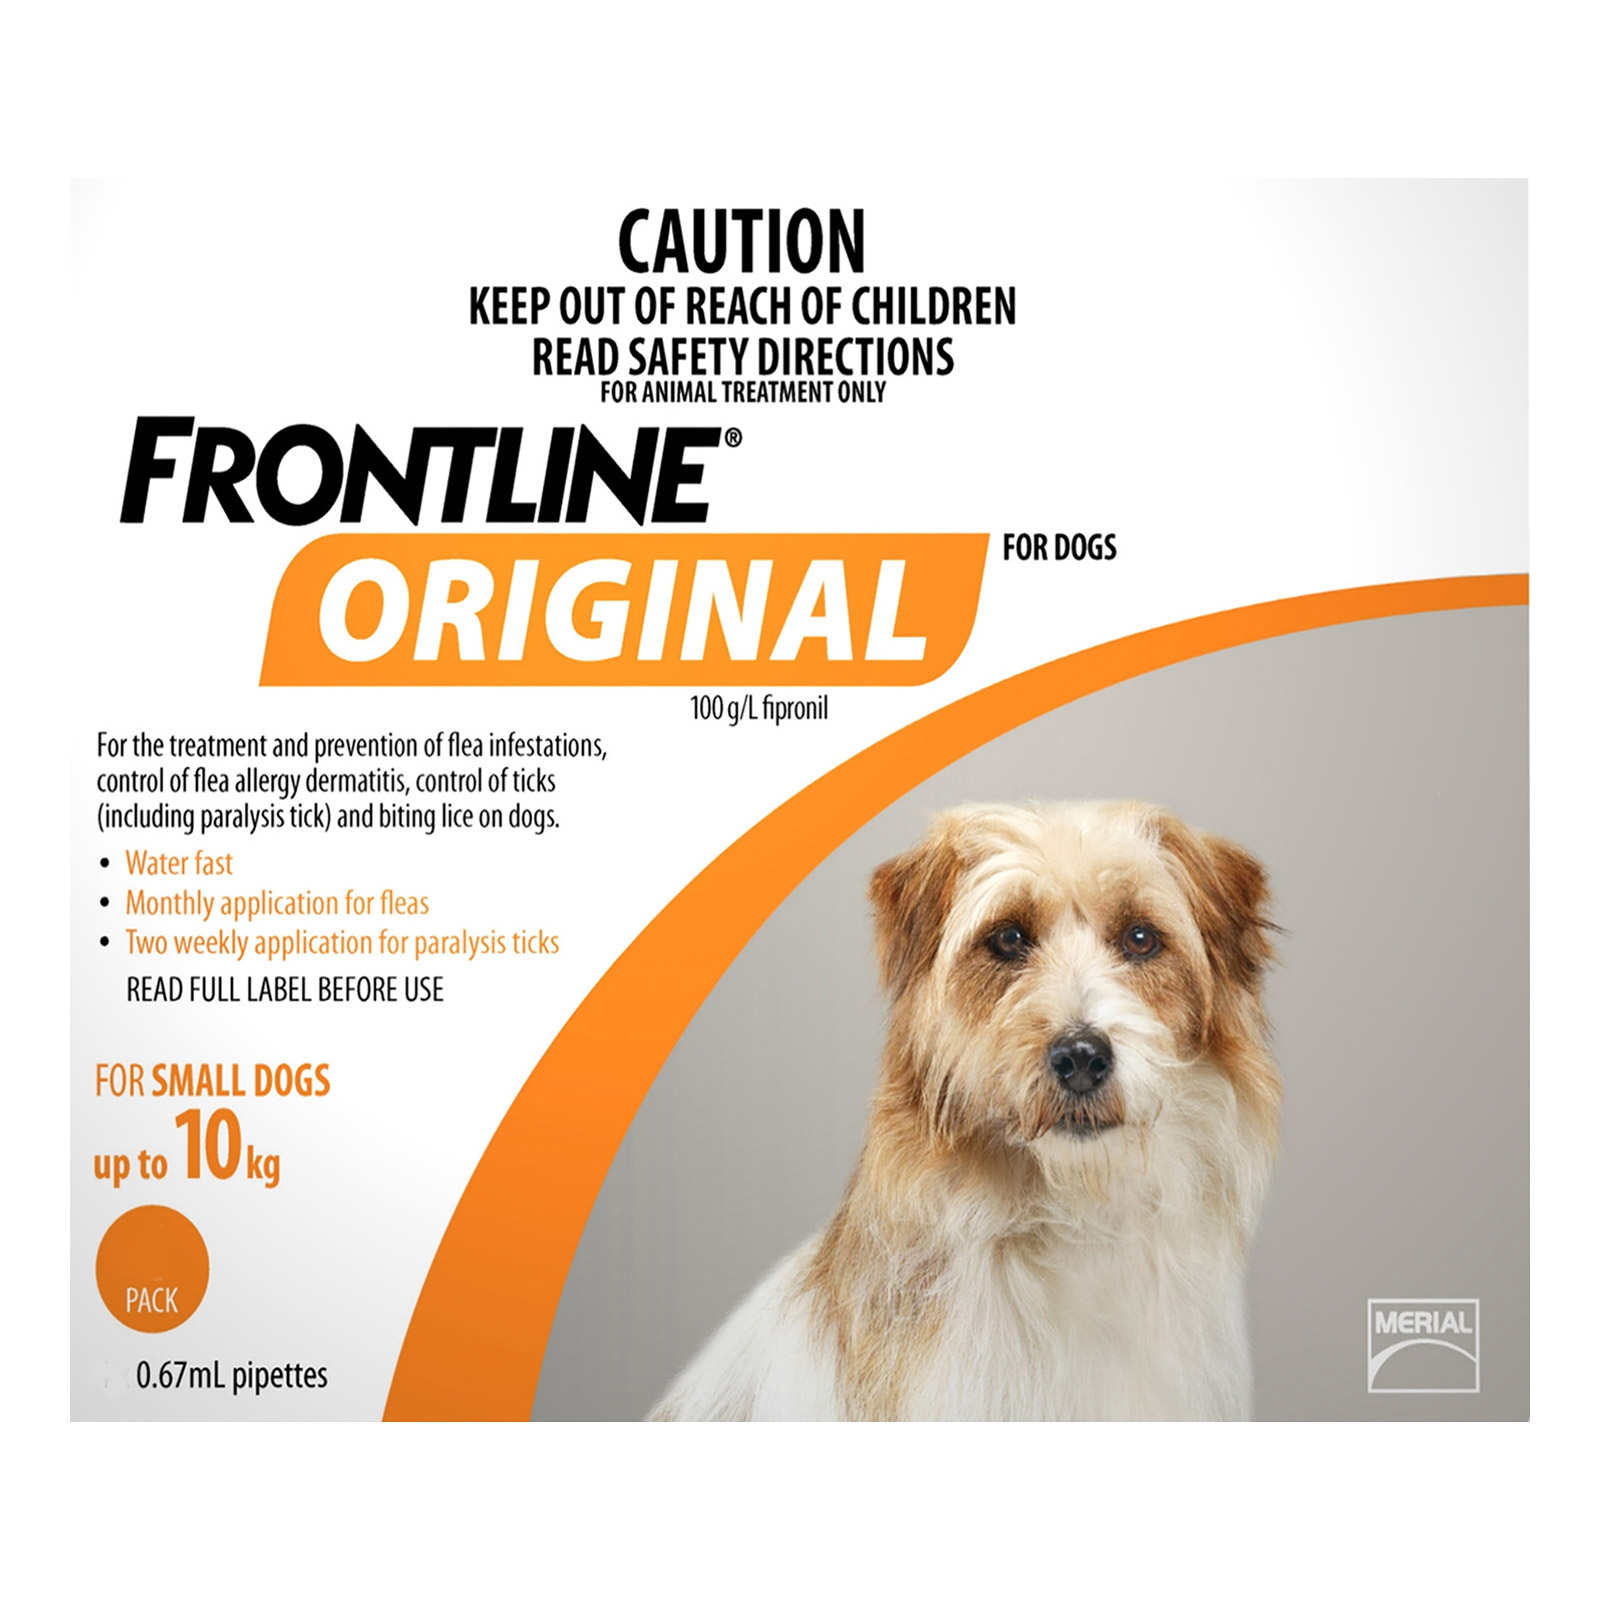 frontline-original-small-dogs-up-to-10kgs.jpg